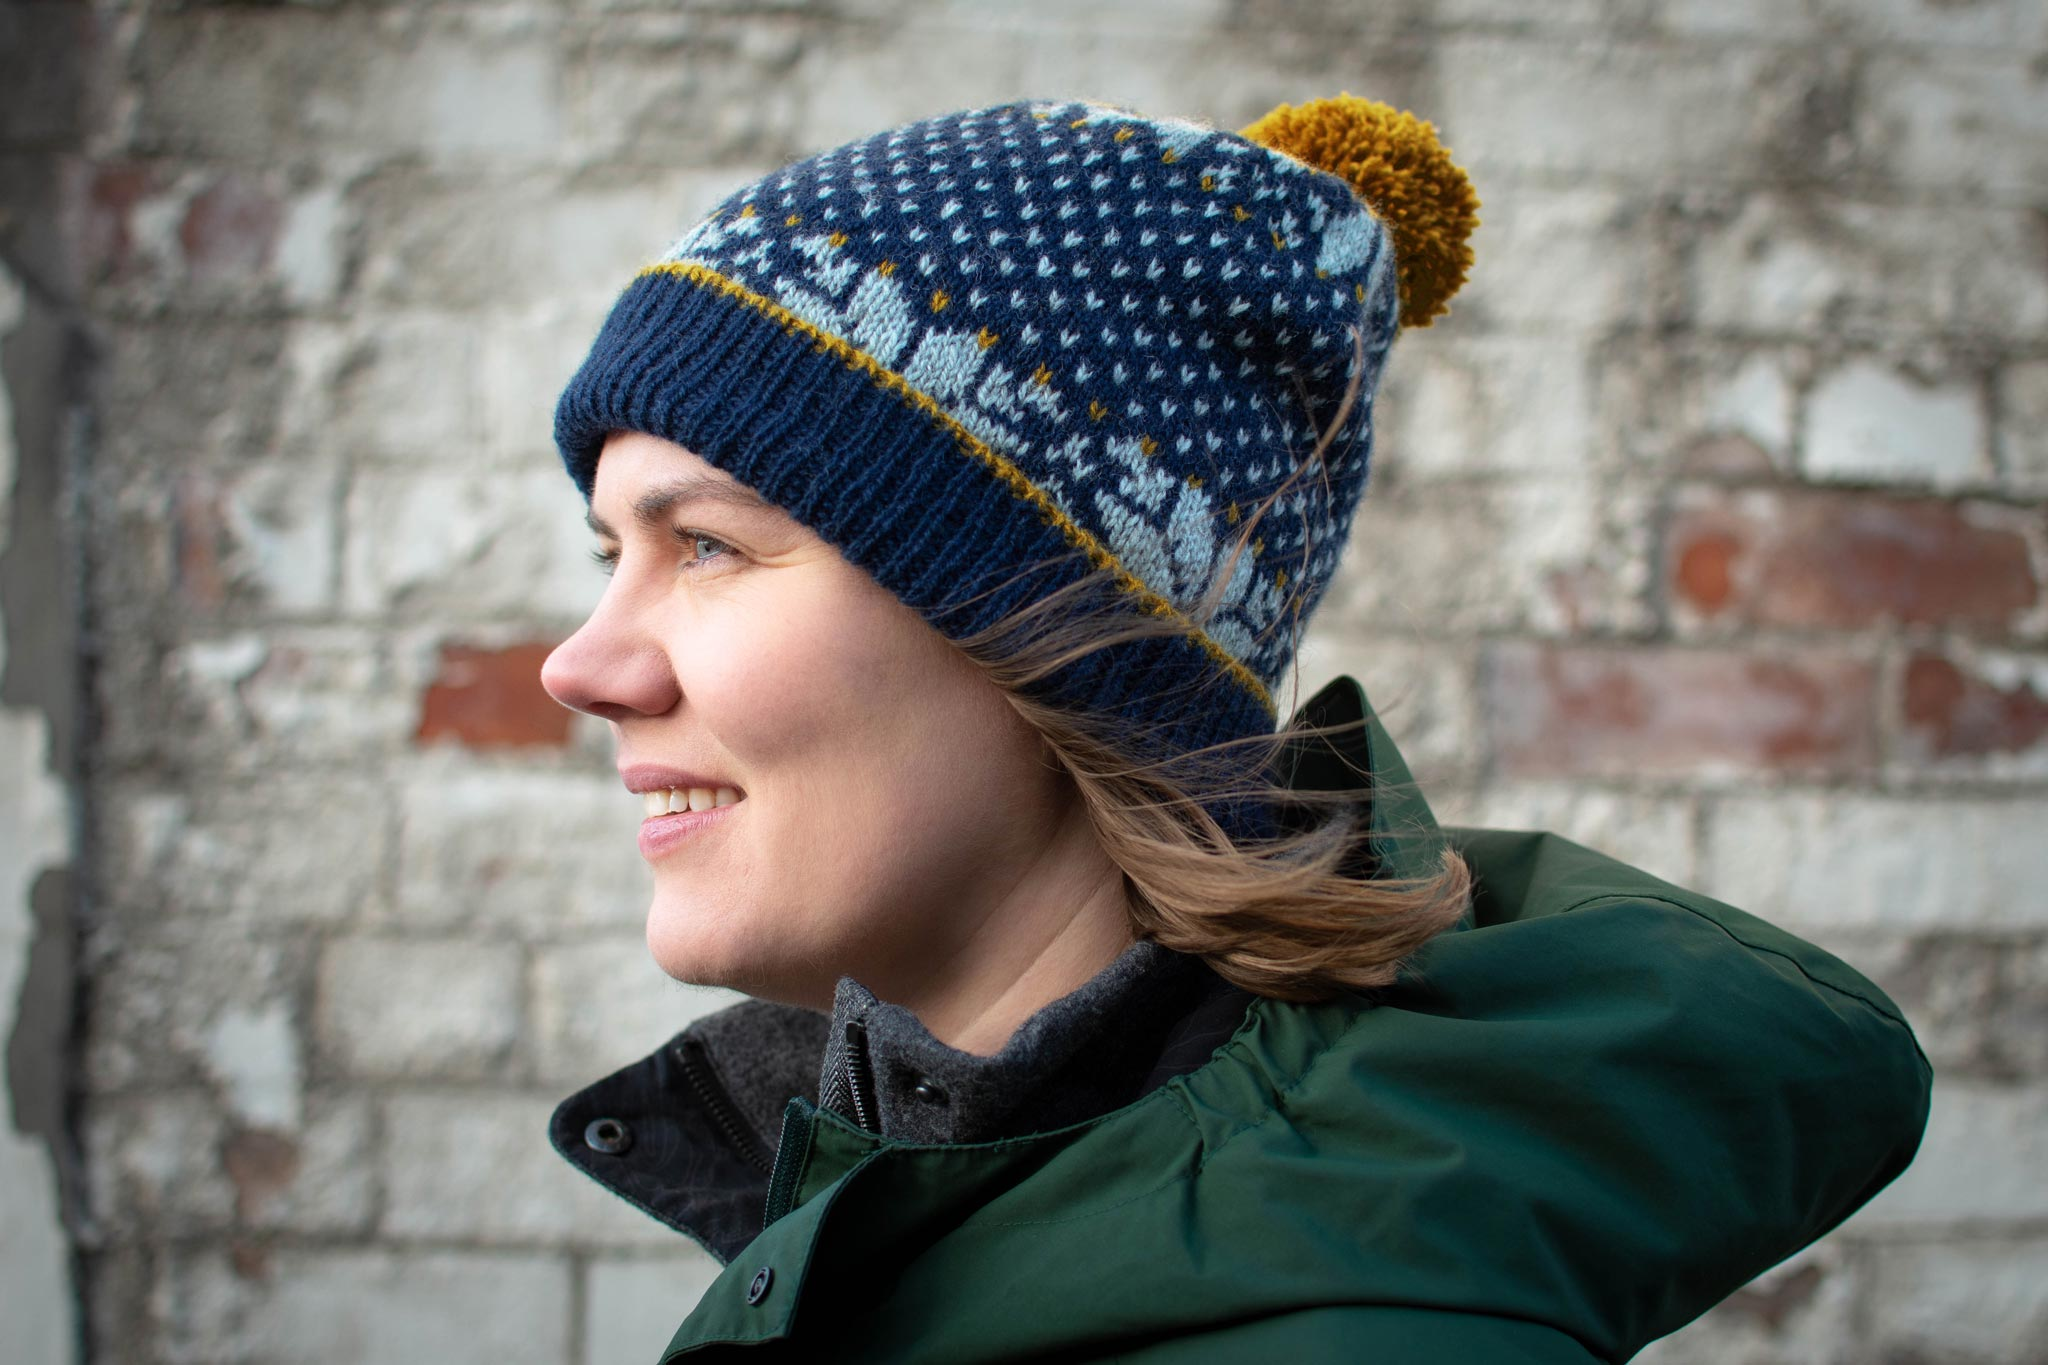 Image of Ysolda, a white woman, facing left and wearing a blue colourwork hat with a folded up brim and a gold pompom.